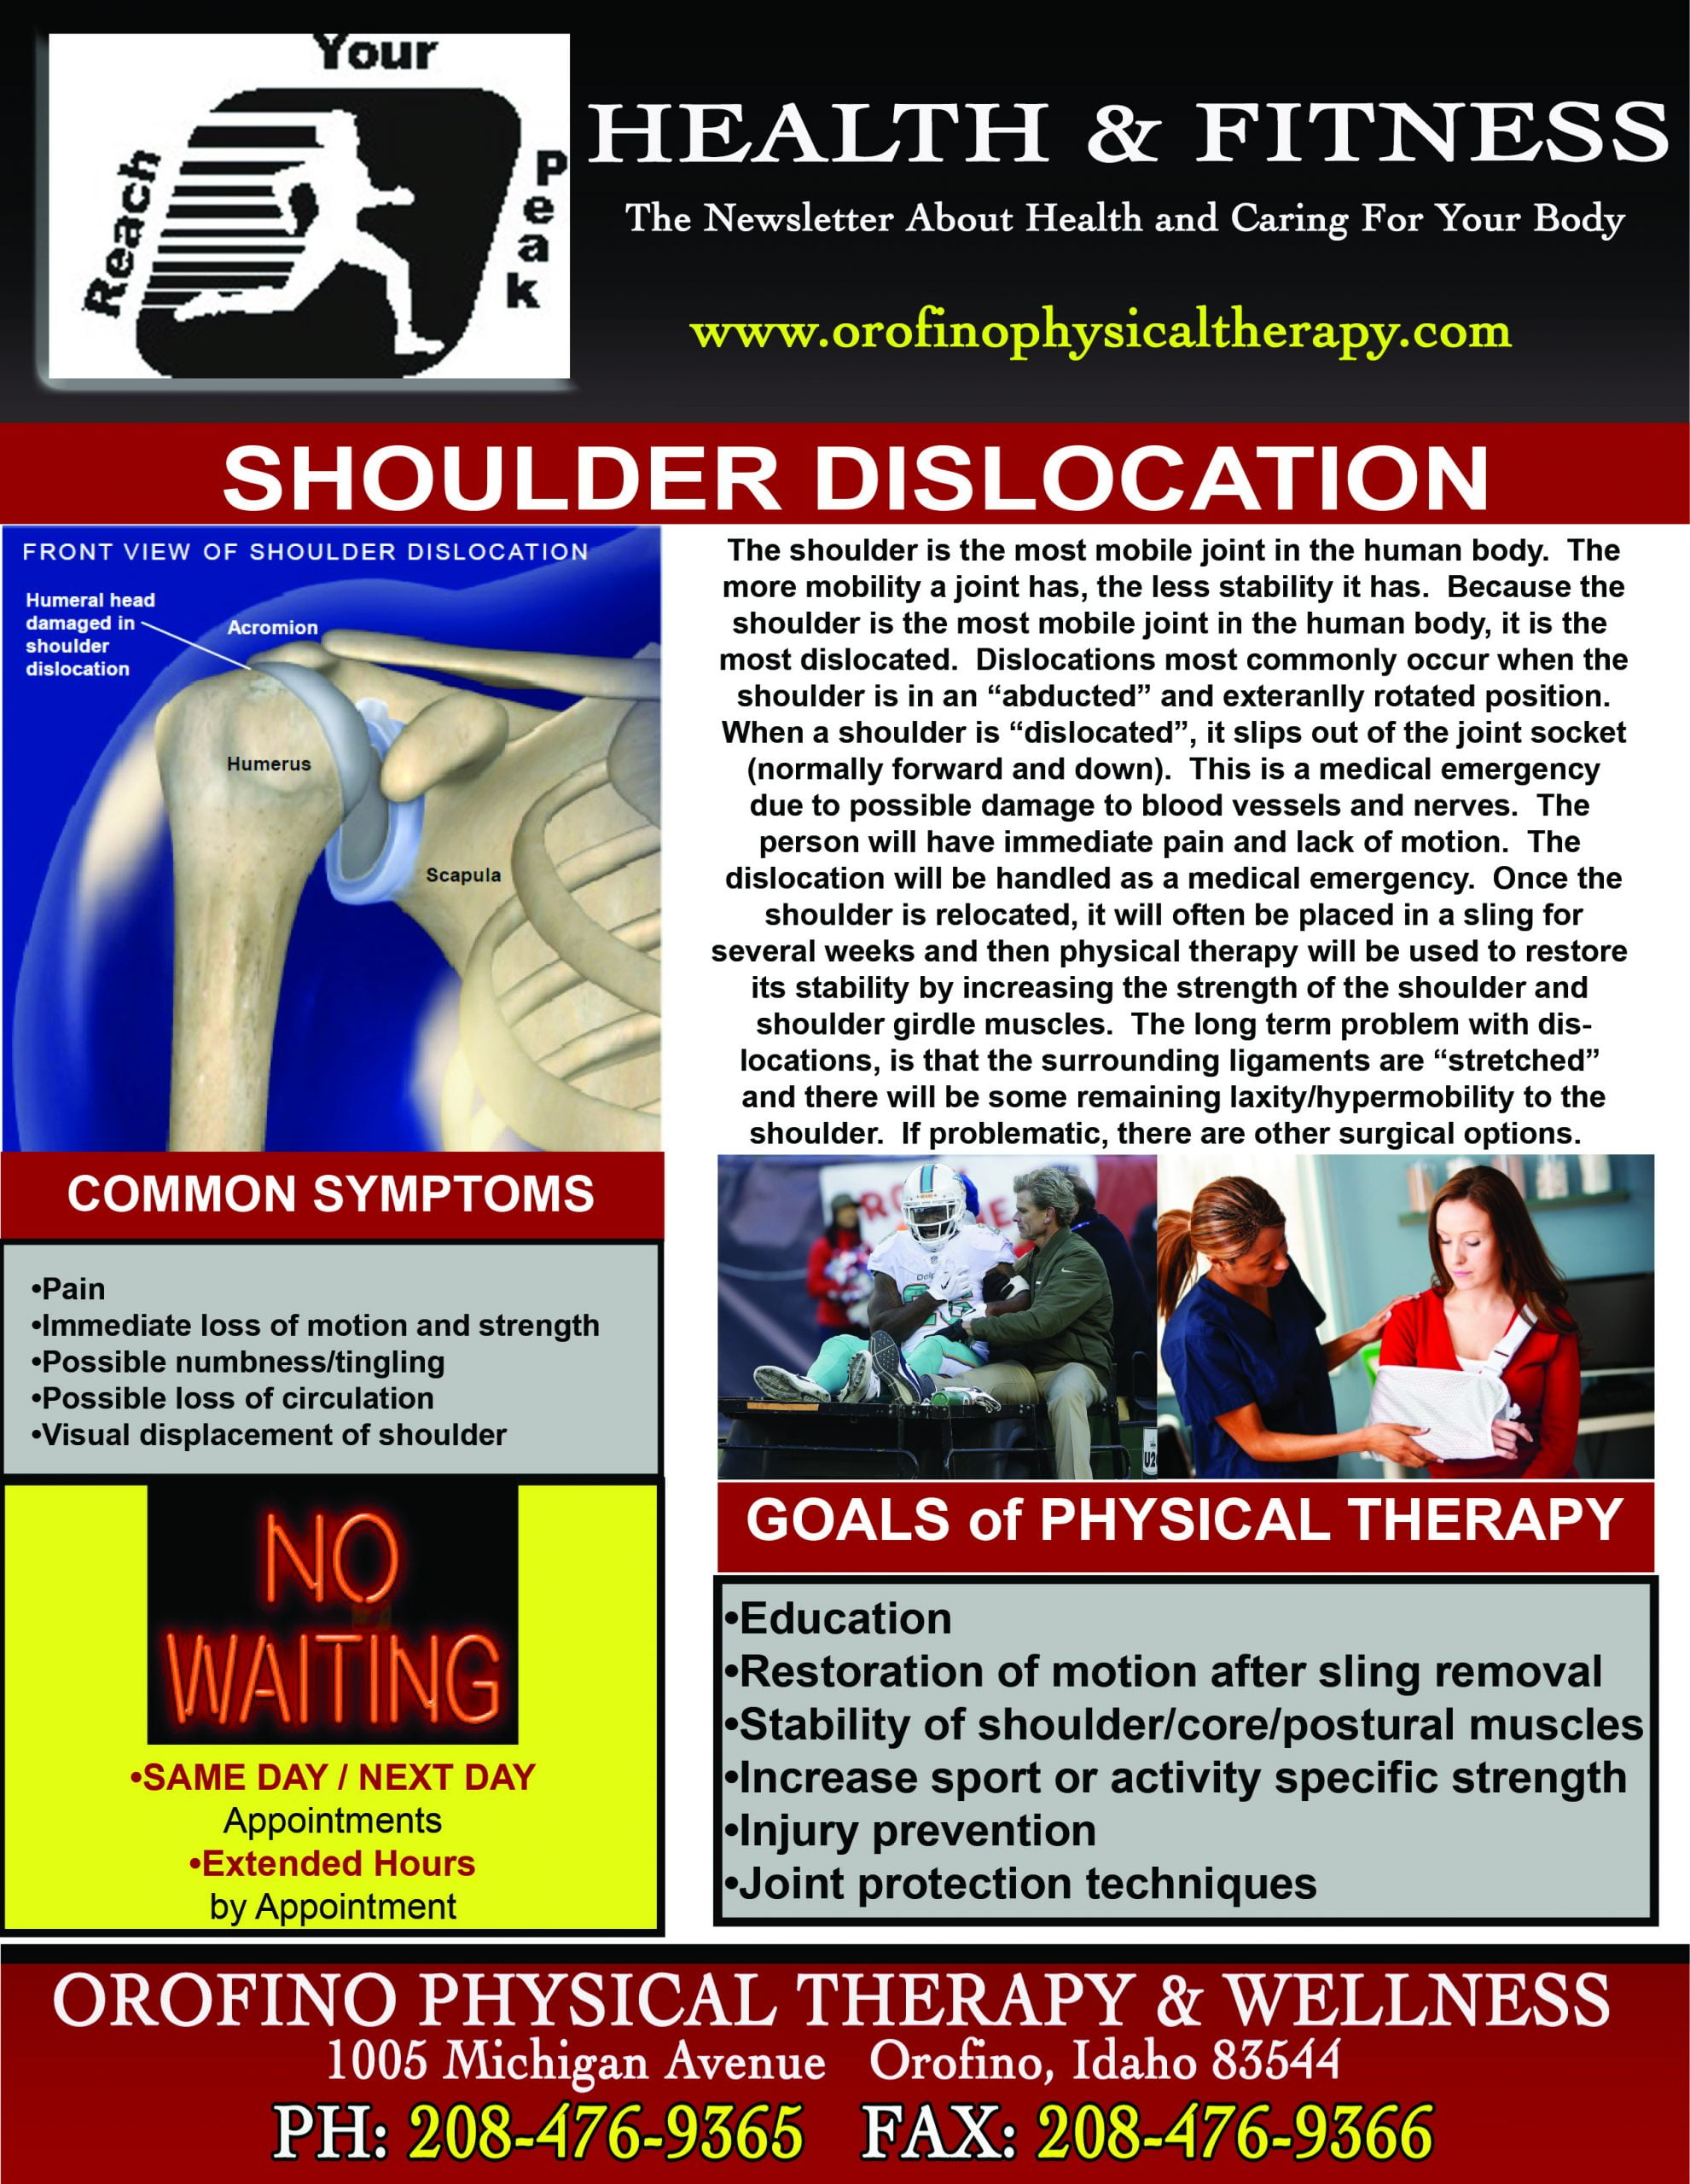 OPT NL Shoulder Dislocation